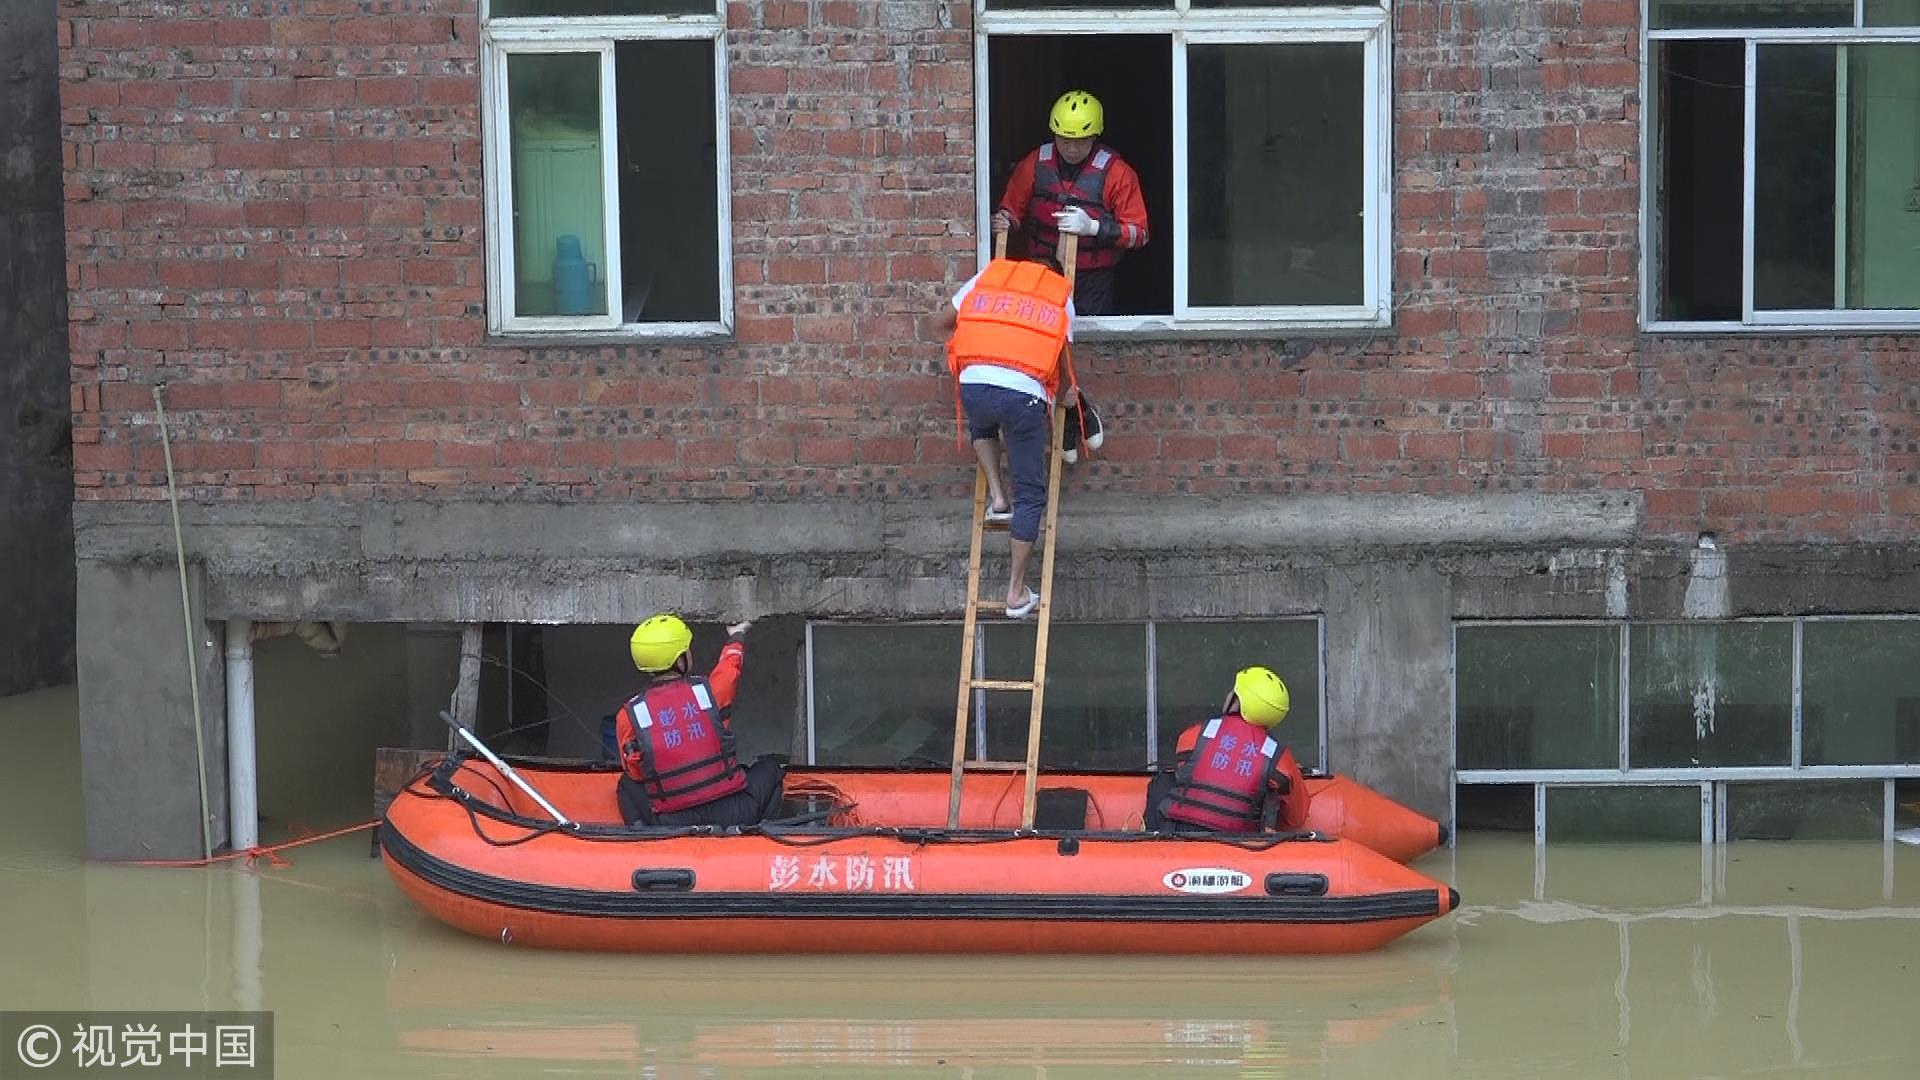 China's firefighters use raft to relocate people stranded by rainstorm